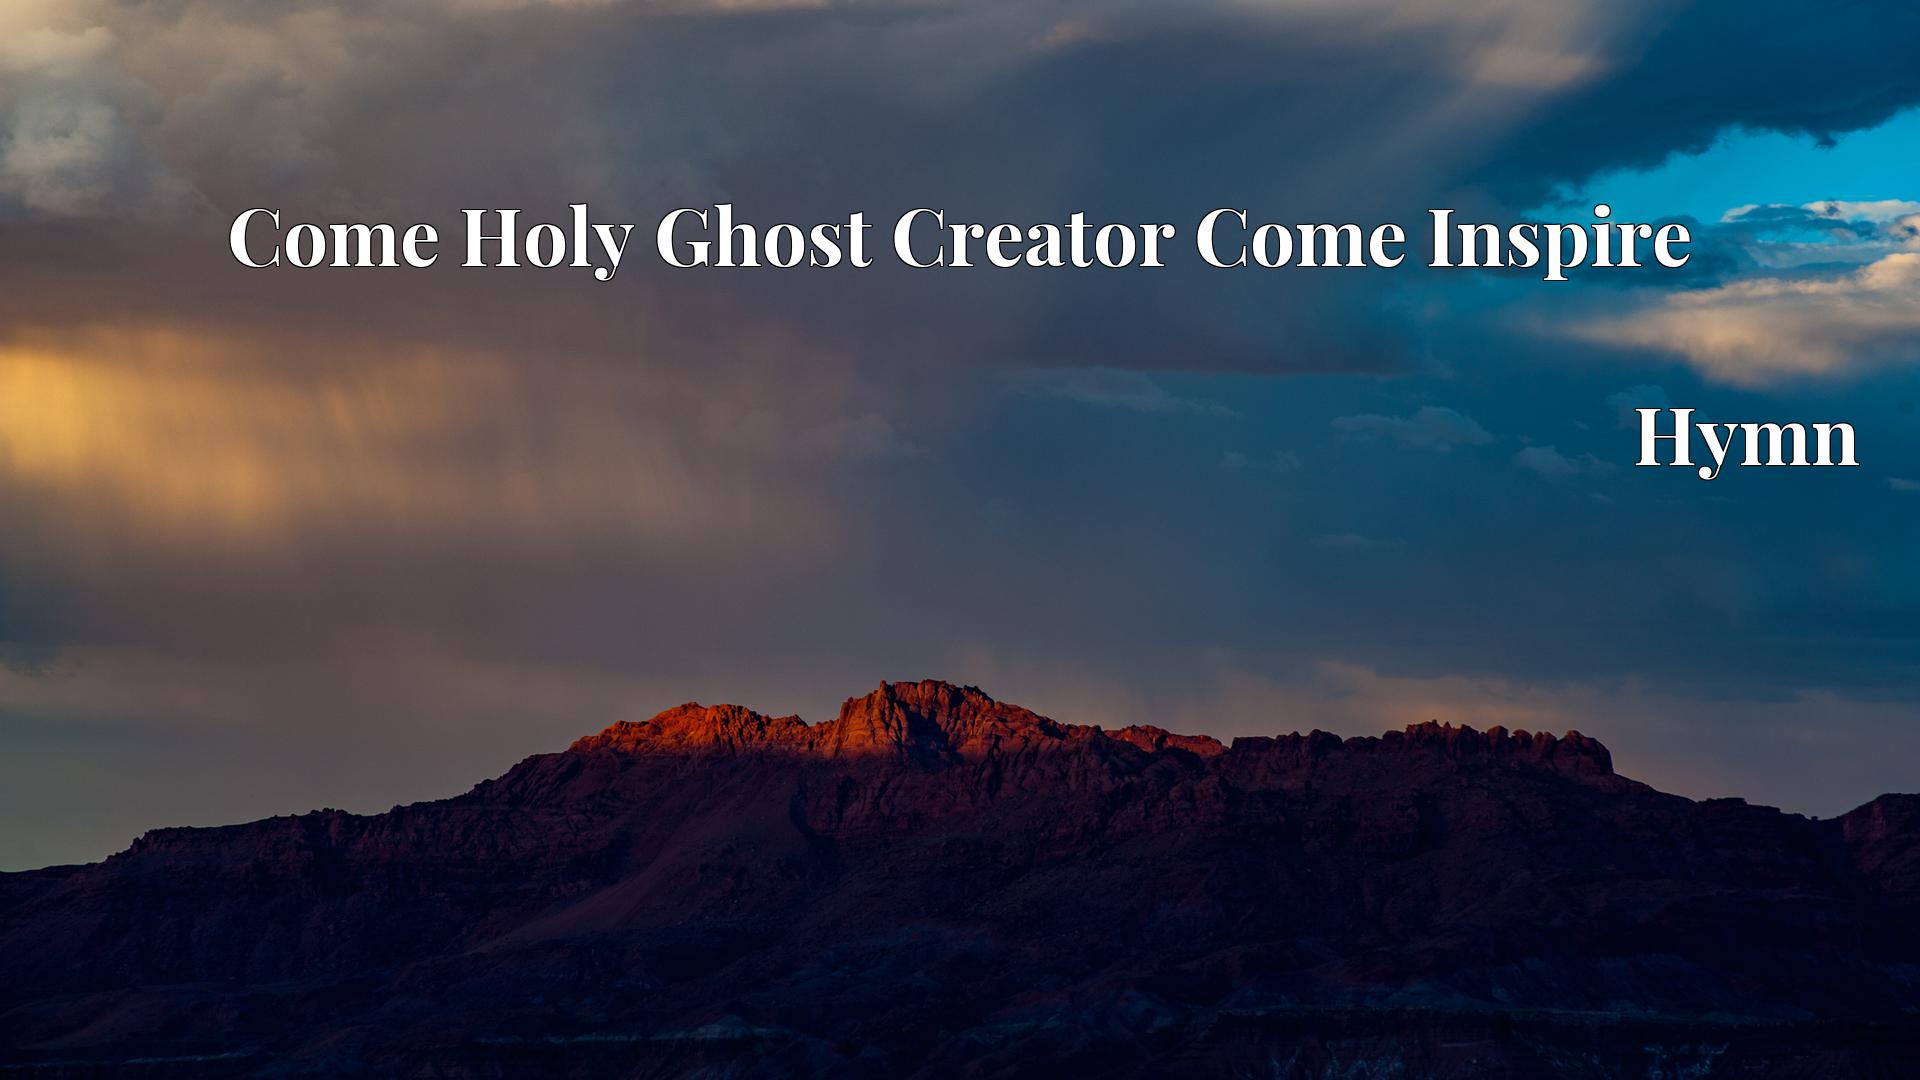 Come Holy Ghost Creator Come Inspire - Hymn